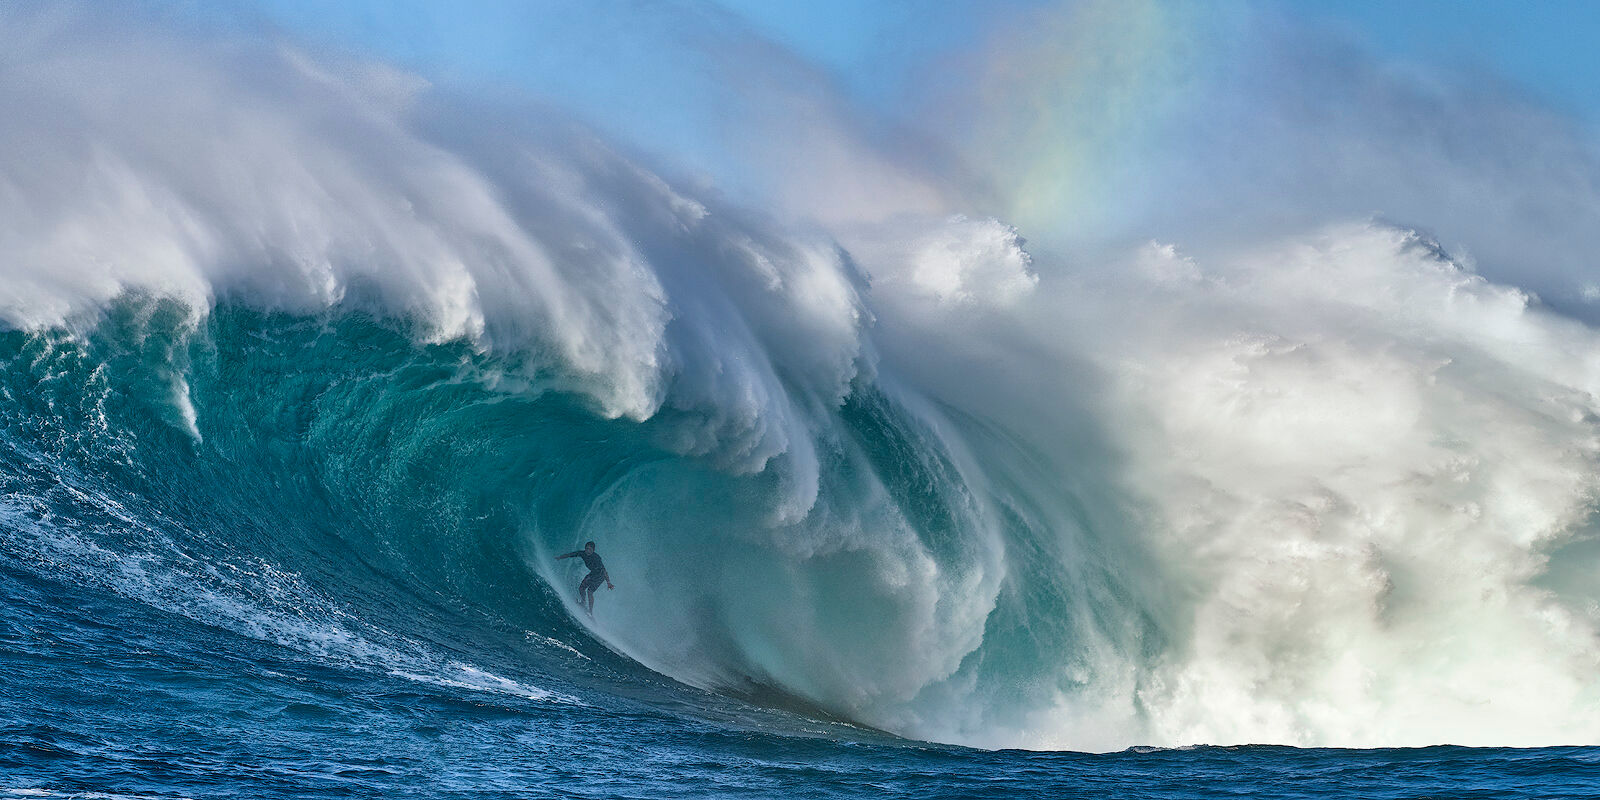 jaws, peahi, surfing, kai lenny, rainbow, big wave, photo